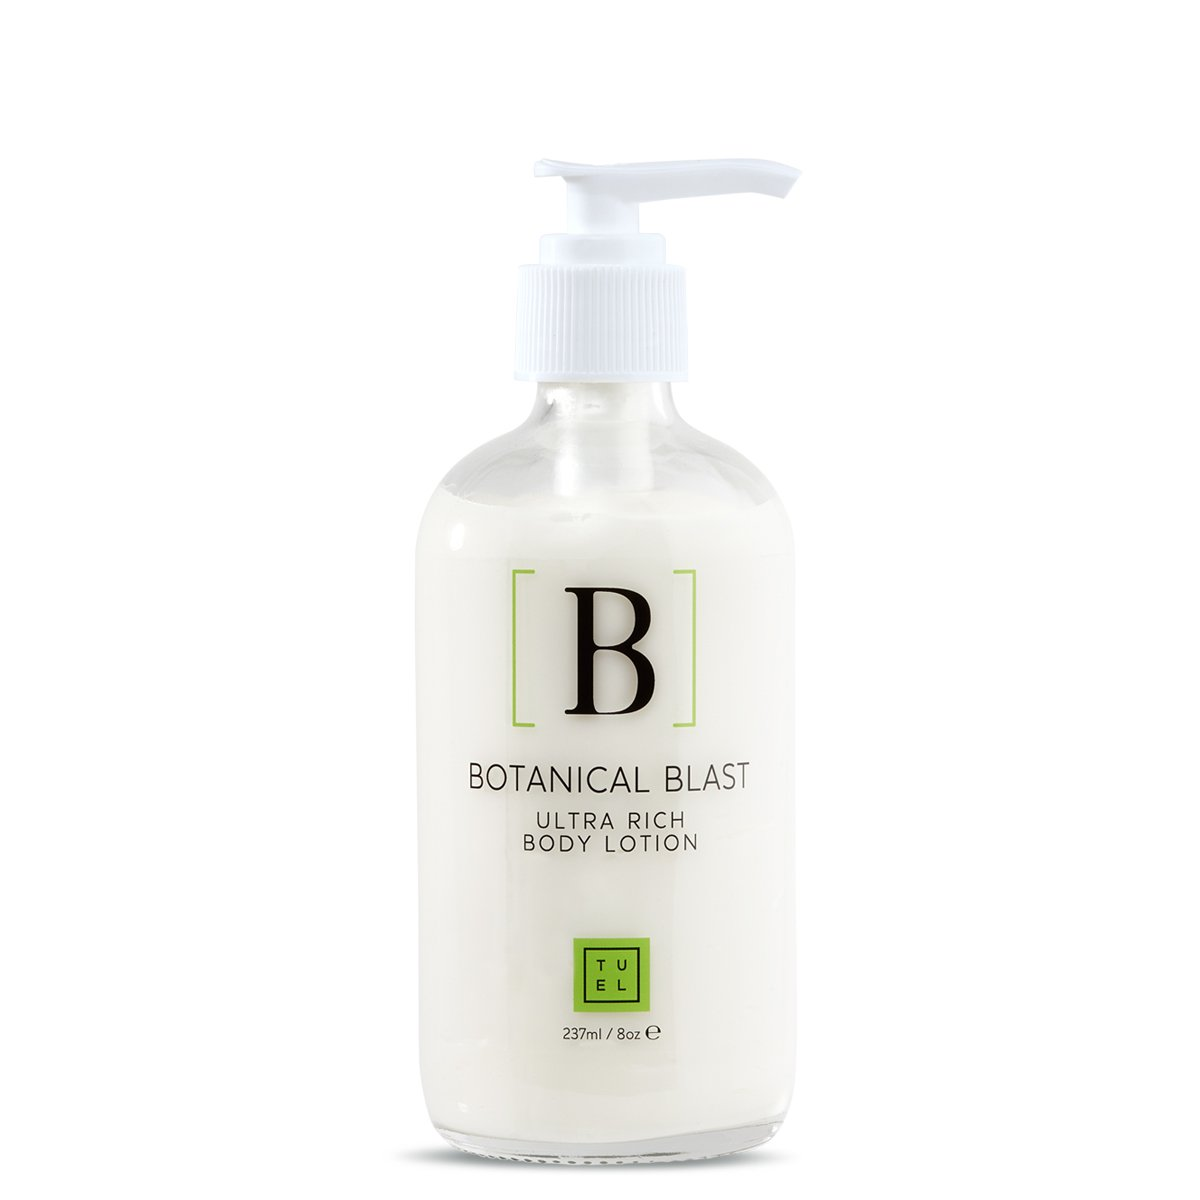 Tu'el Botanical Blast Ultra Rich Body Lotion